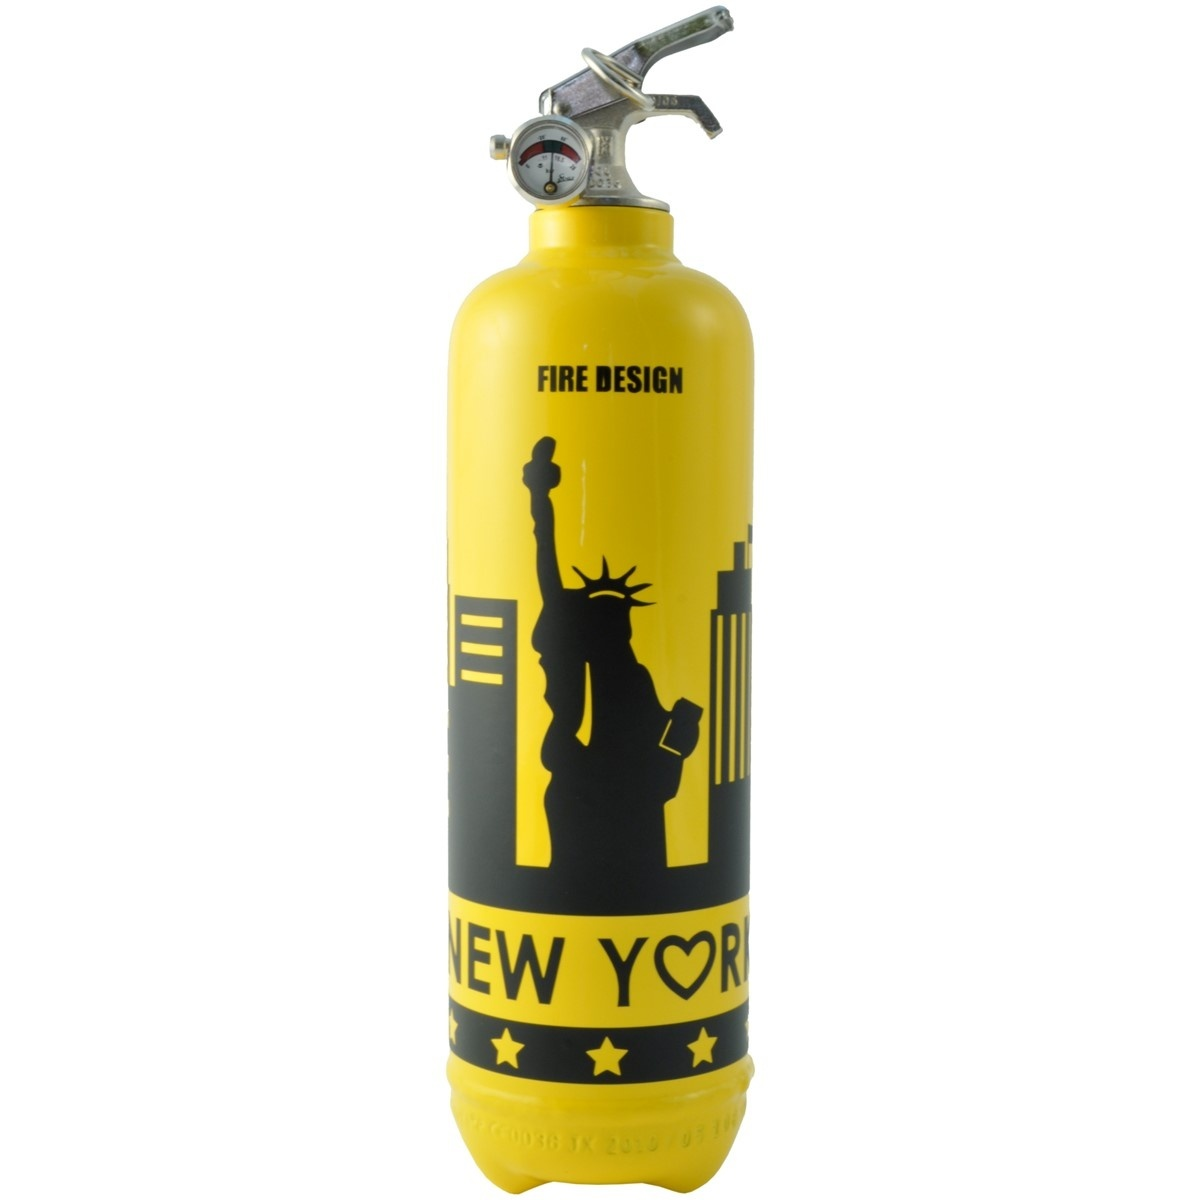 Extincteur New York Jaune - Fire Design